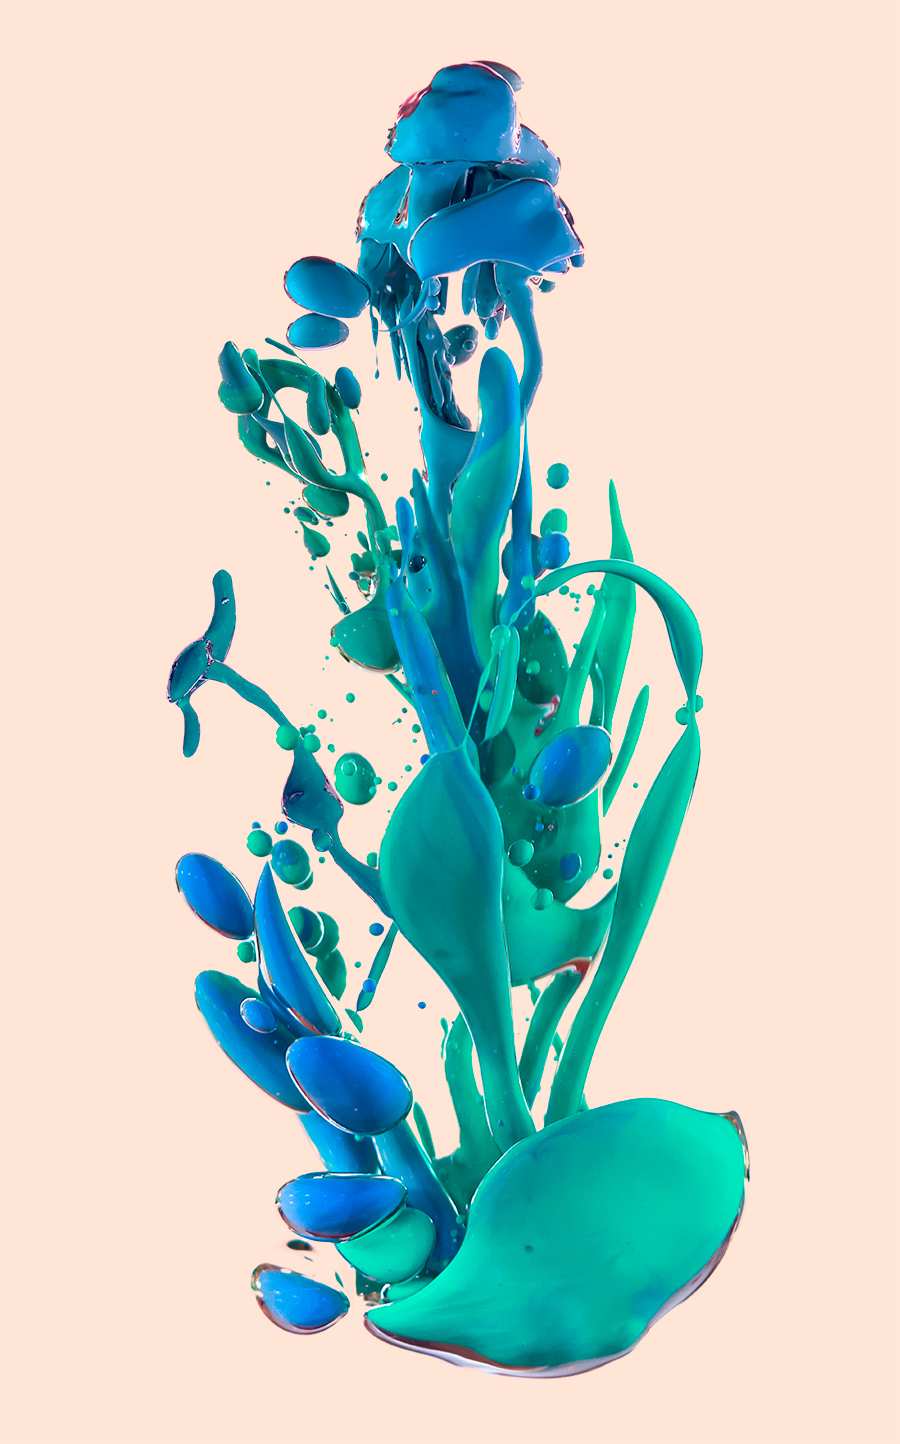 Glory POP Alberto Seveso - New incredible underwater ink photographs alberto seveso